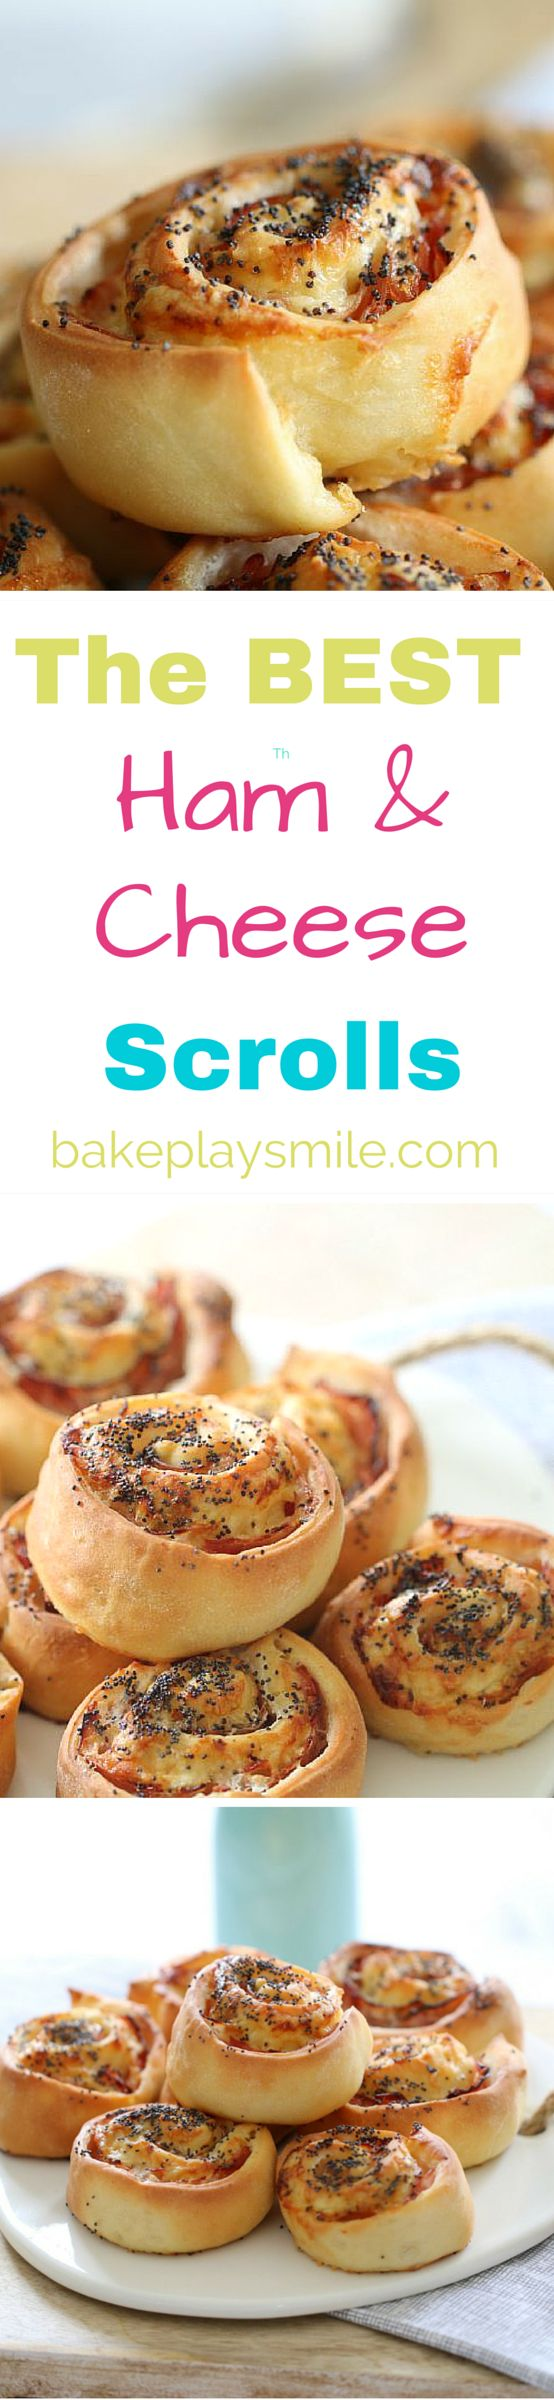 These Ham & Cheese Scrolls with mayonnaise are perfectly crispy on the outside and soft on the inside. They're perfect for lunch boxes and can also be frozen. | Bake Play Smile